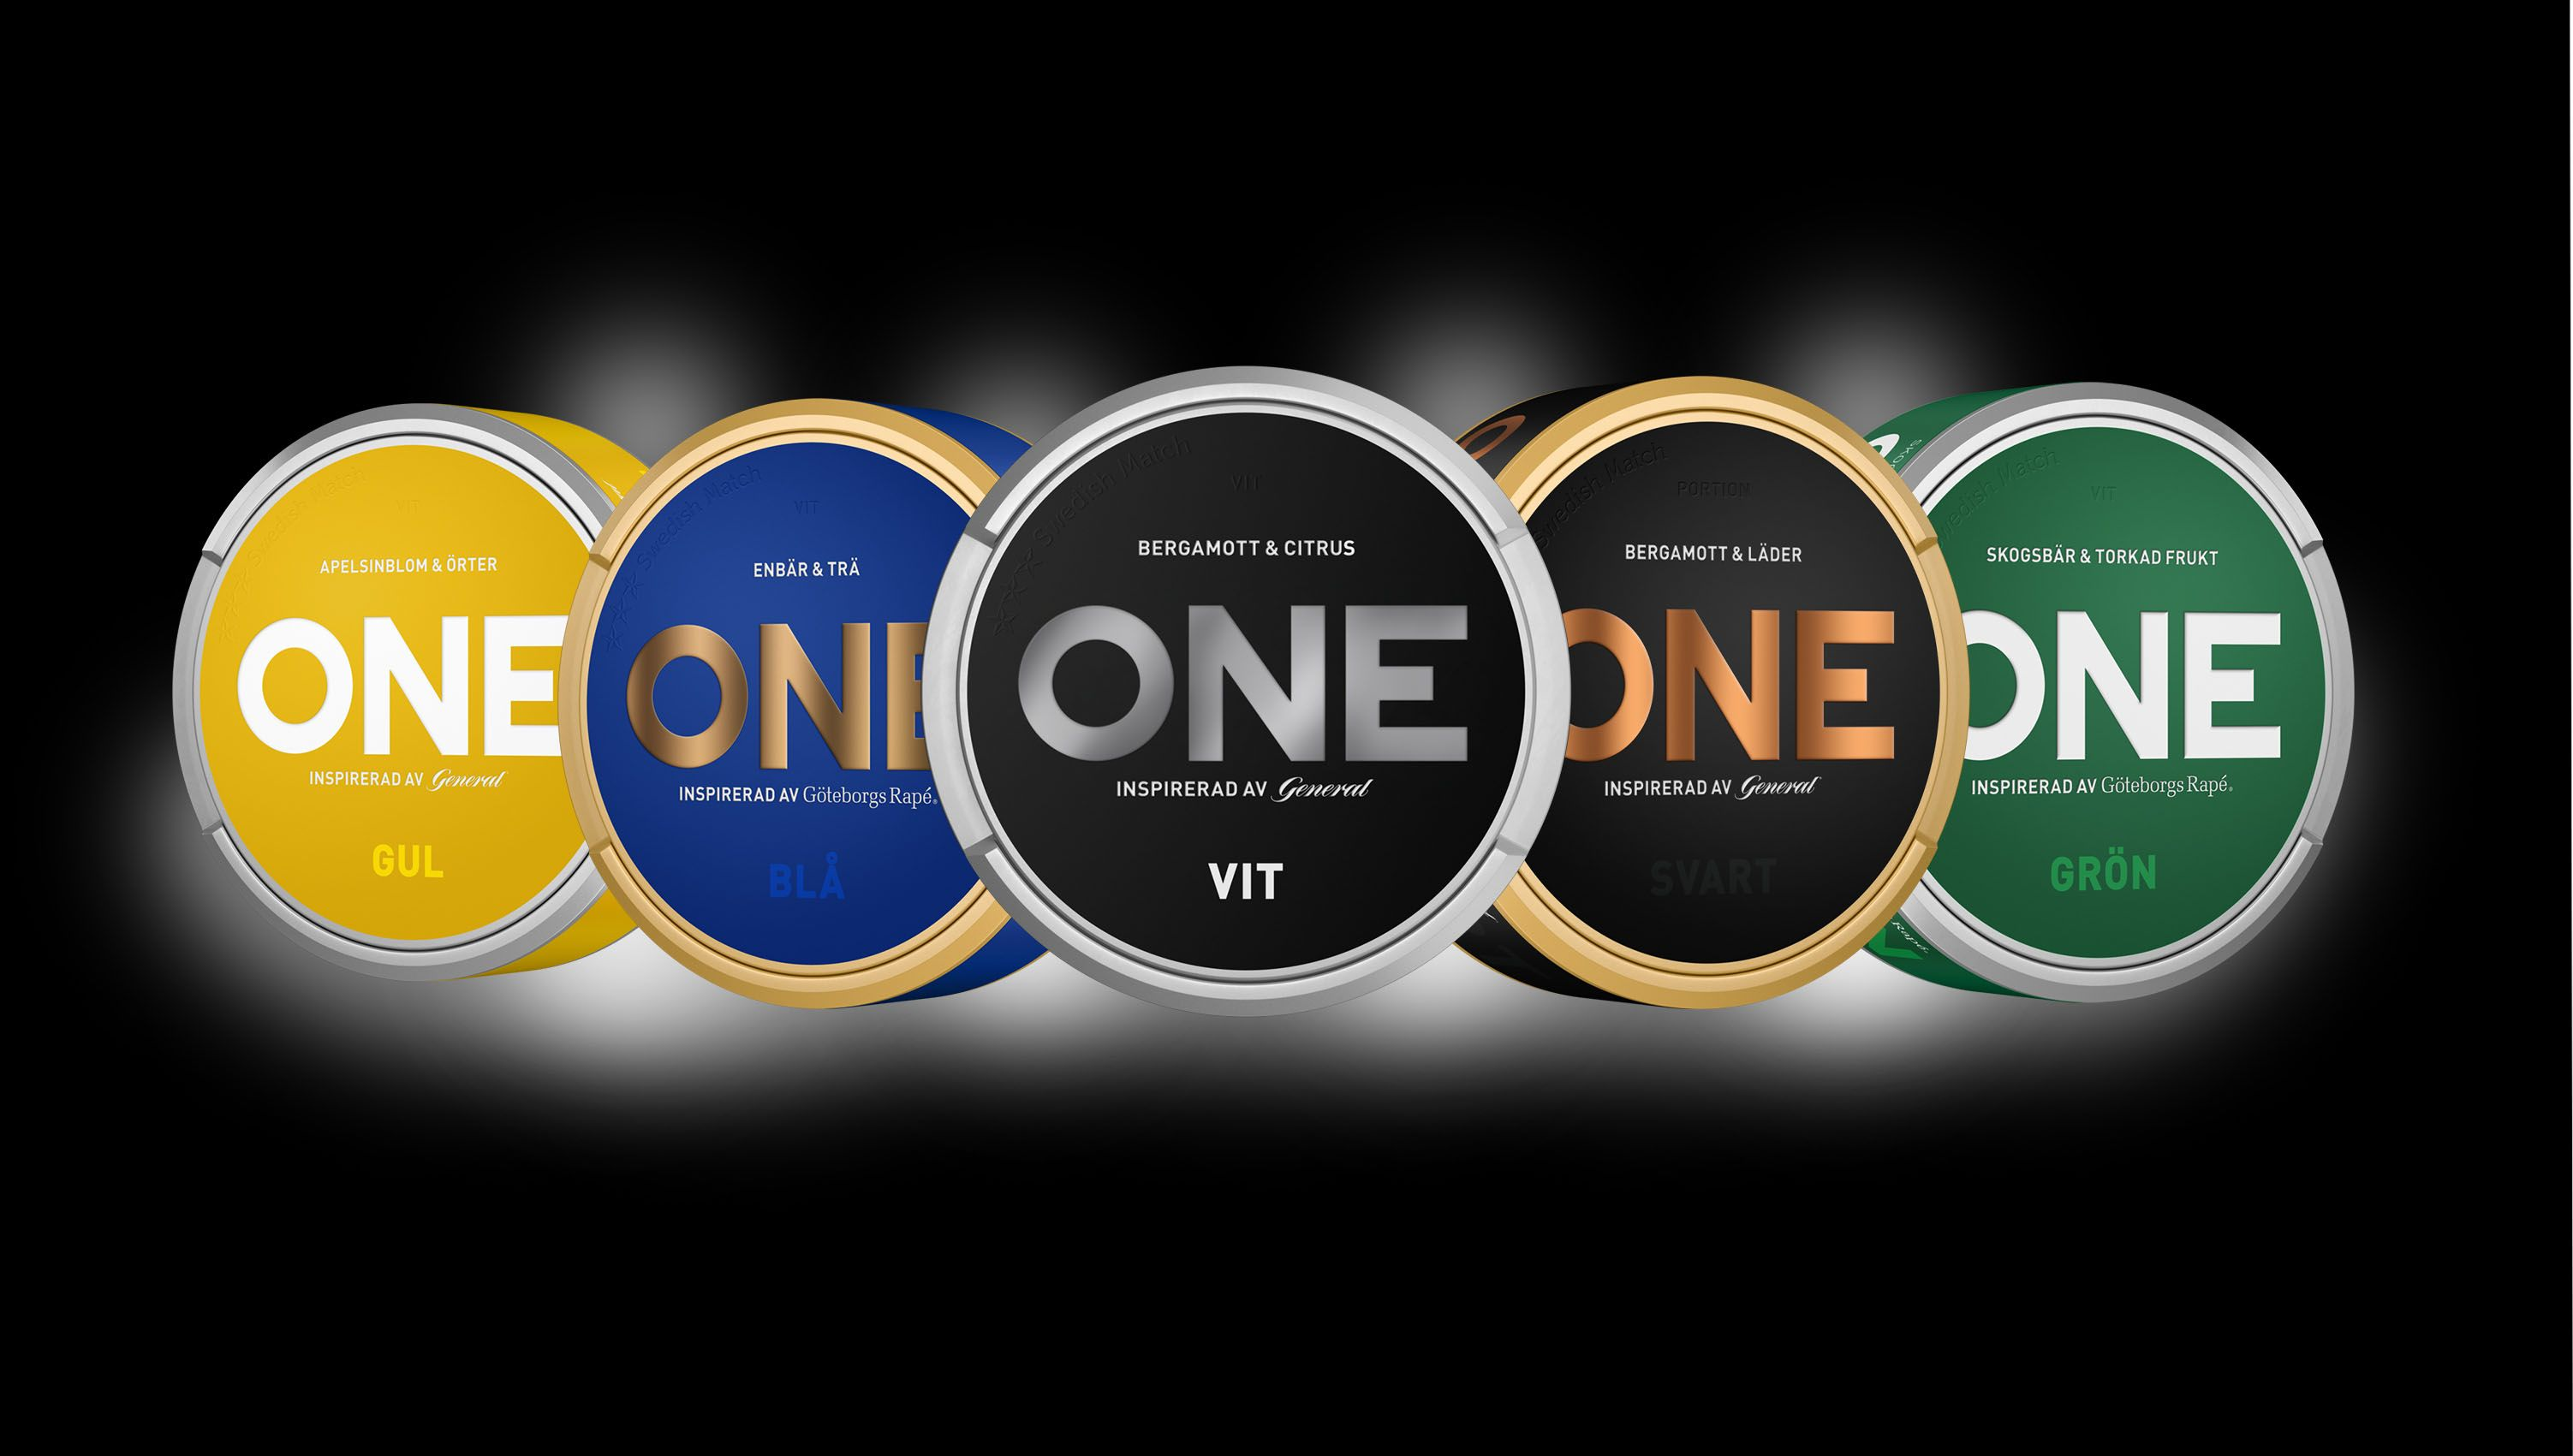 The new ONE snus